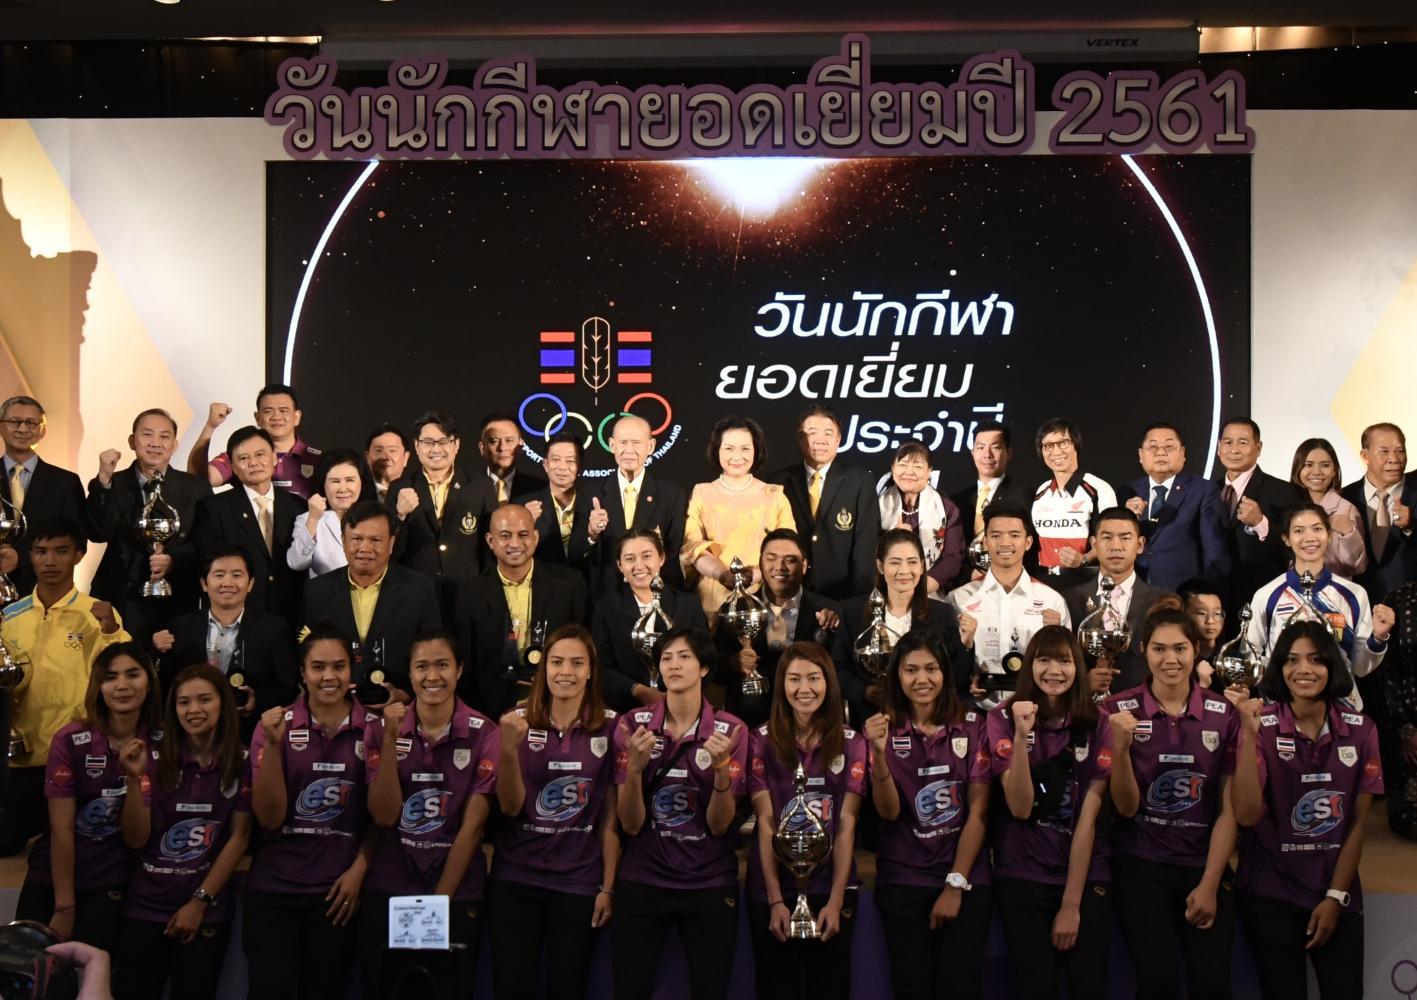 Award winners pose with their trophies and officials at the Arnoma Grand Bangkok on Saturday.